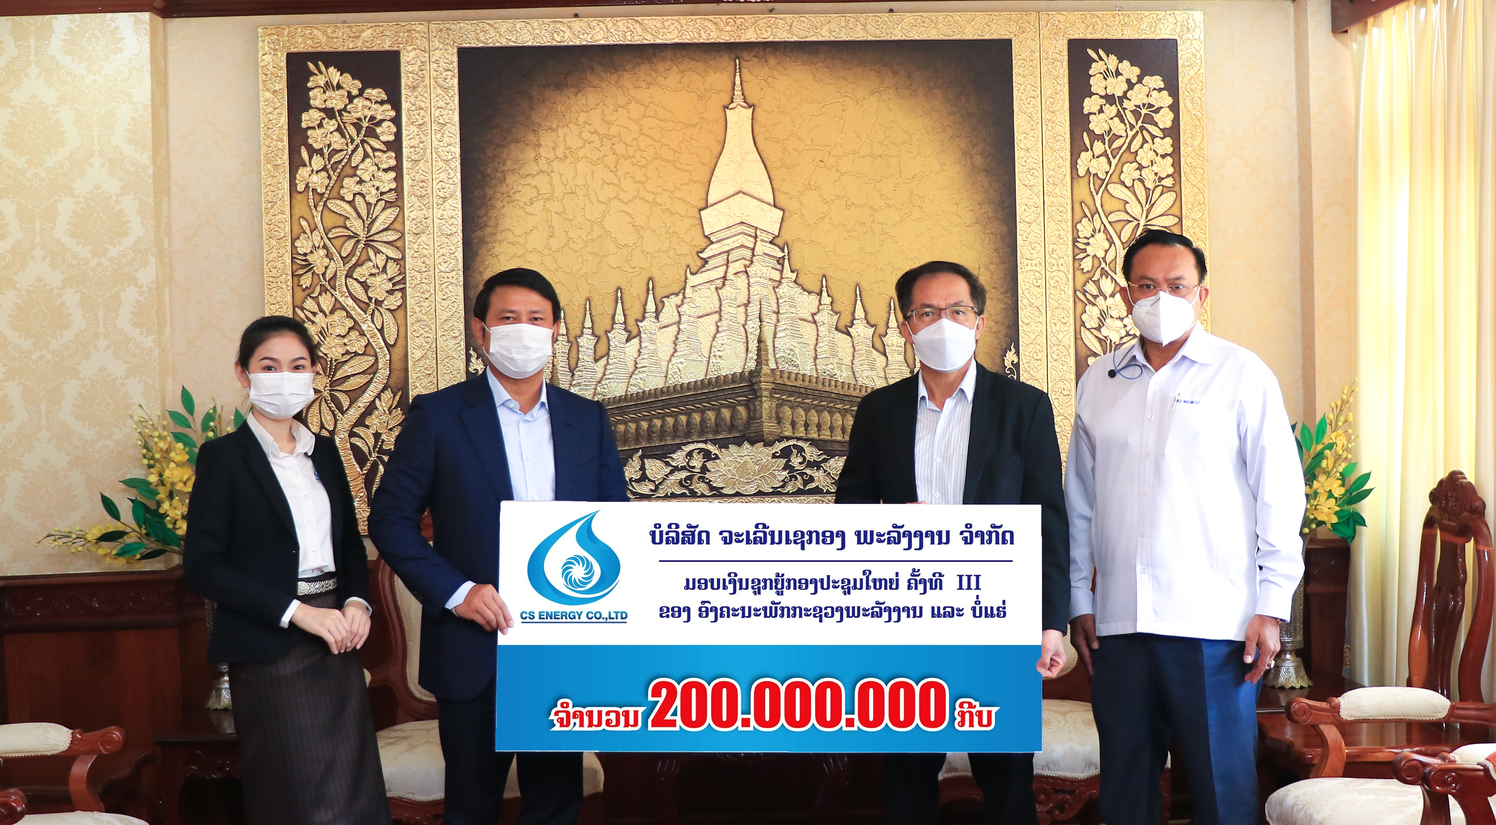 Chaluen Sekong Energy Co., Ltd. donates money to support for the 3rd General Assembly of the Ministry of Energy and Mines